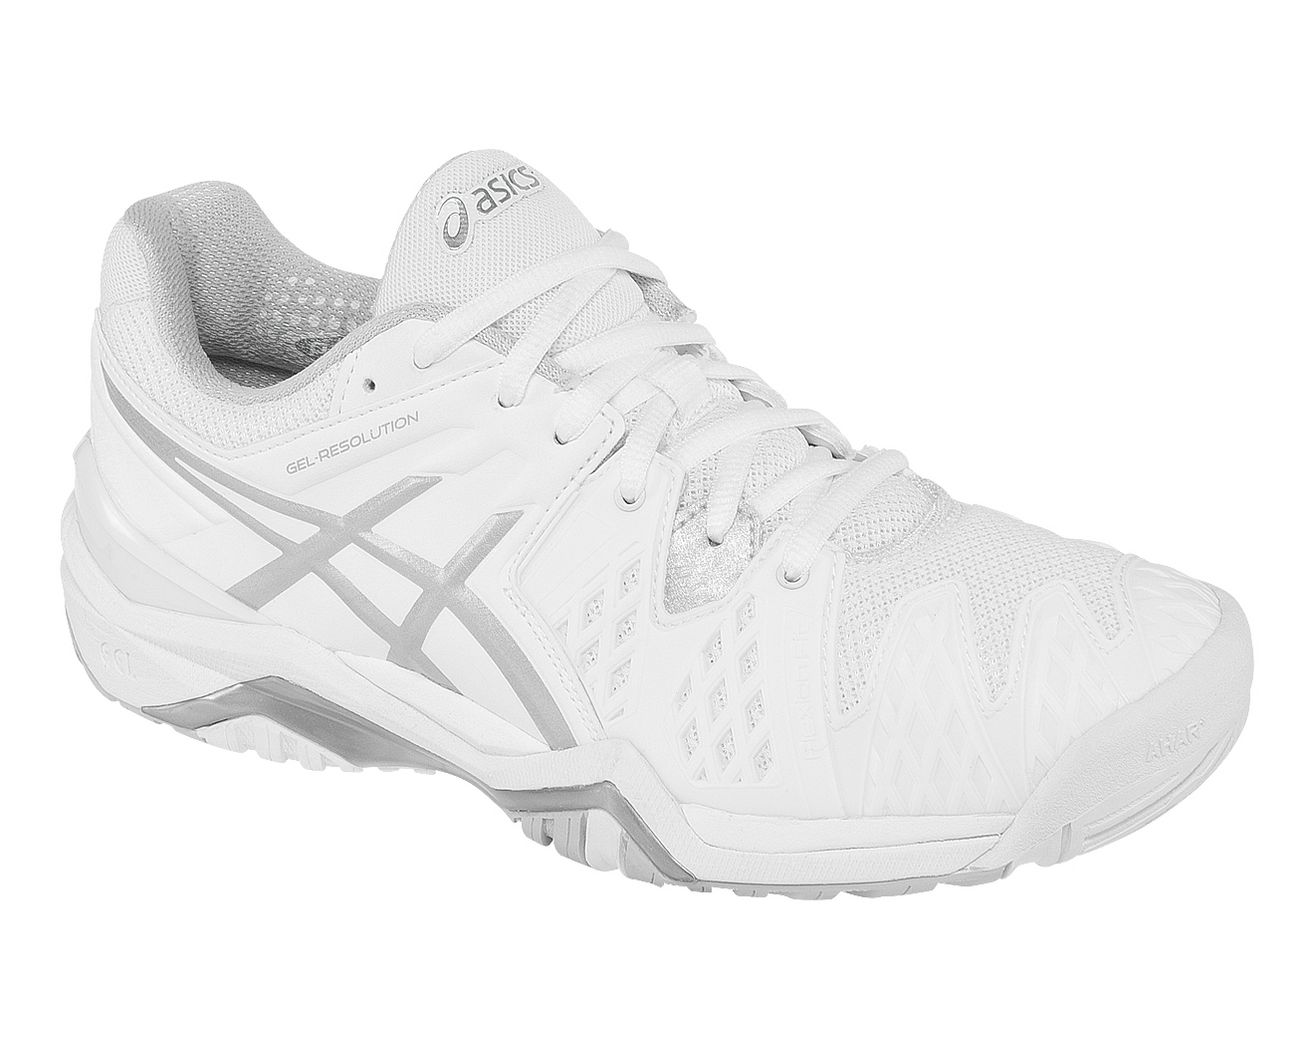 Womens ASICS GEL-Resolution 6 Court Shoe at Road Runner Sports